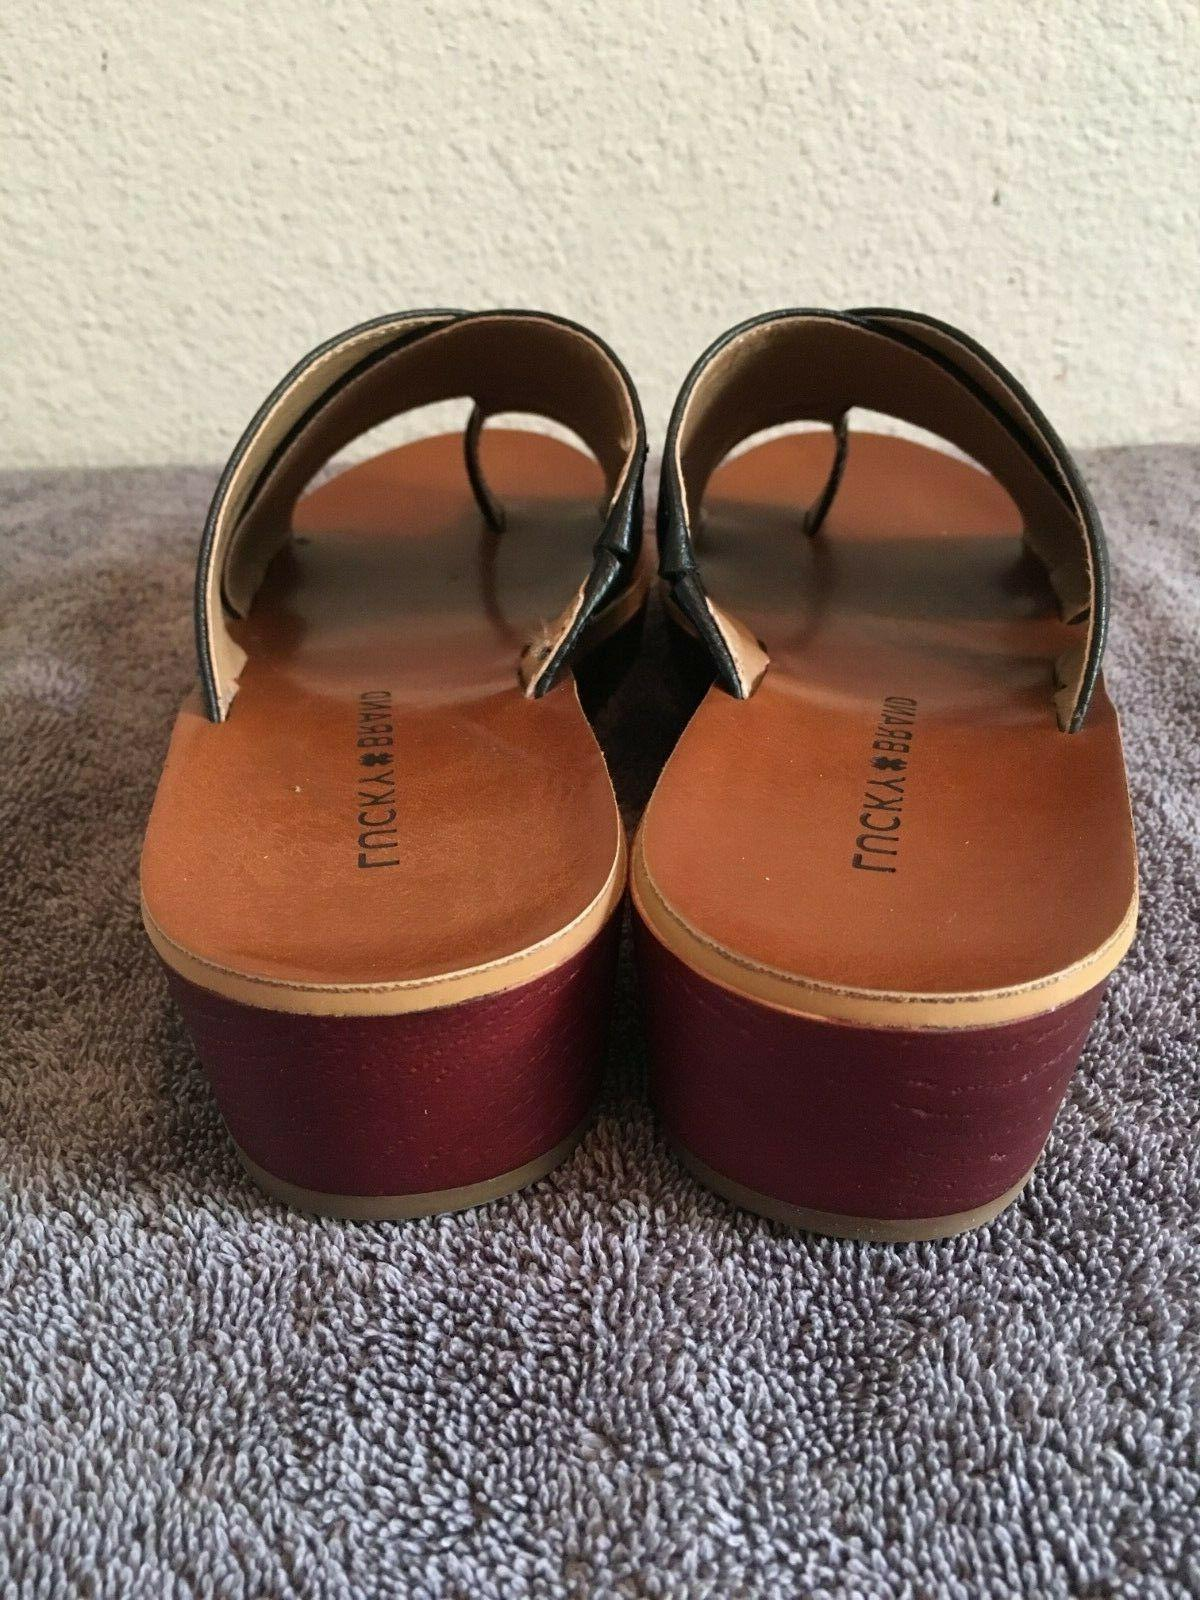 NWOT Women's Lucky Haydyn Wedge Straps